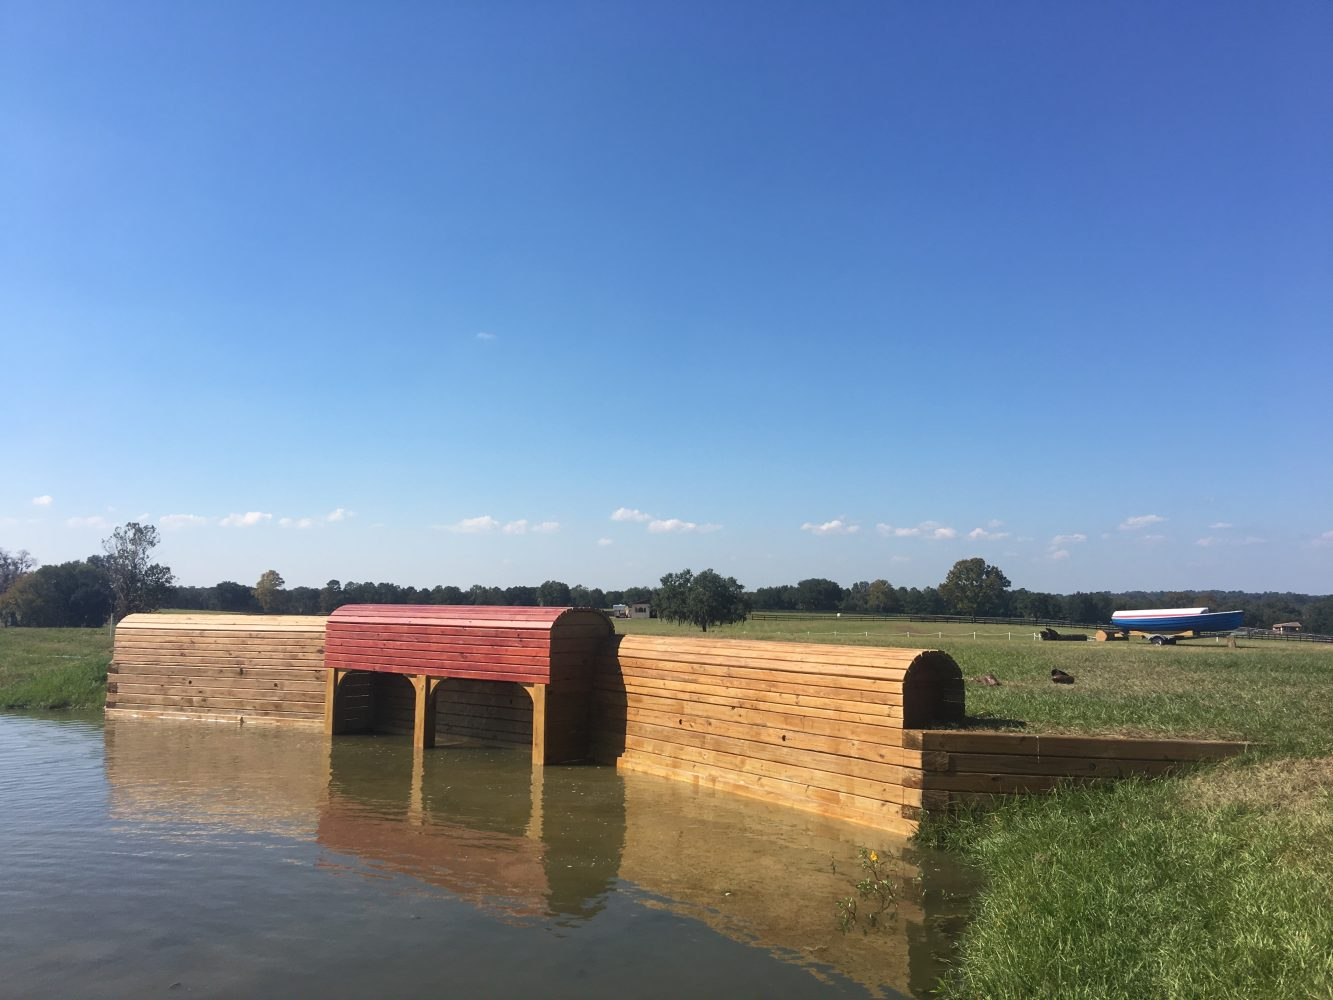 The competing horses will jump over these handmade obstacles during the event on Nov. 24-27.This obstacle, representing a boat house, drops six feet into a lake.